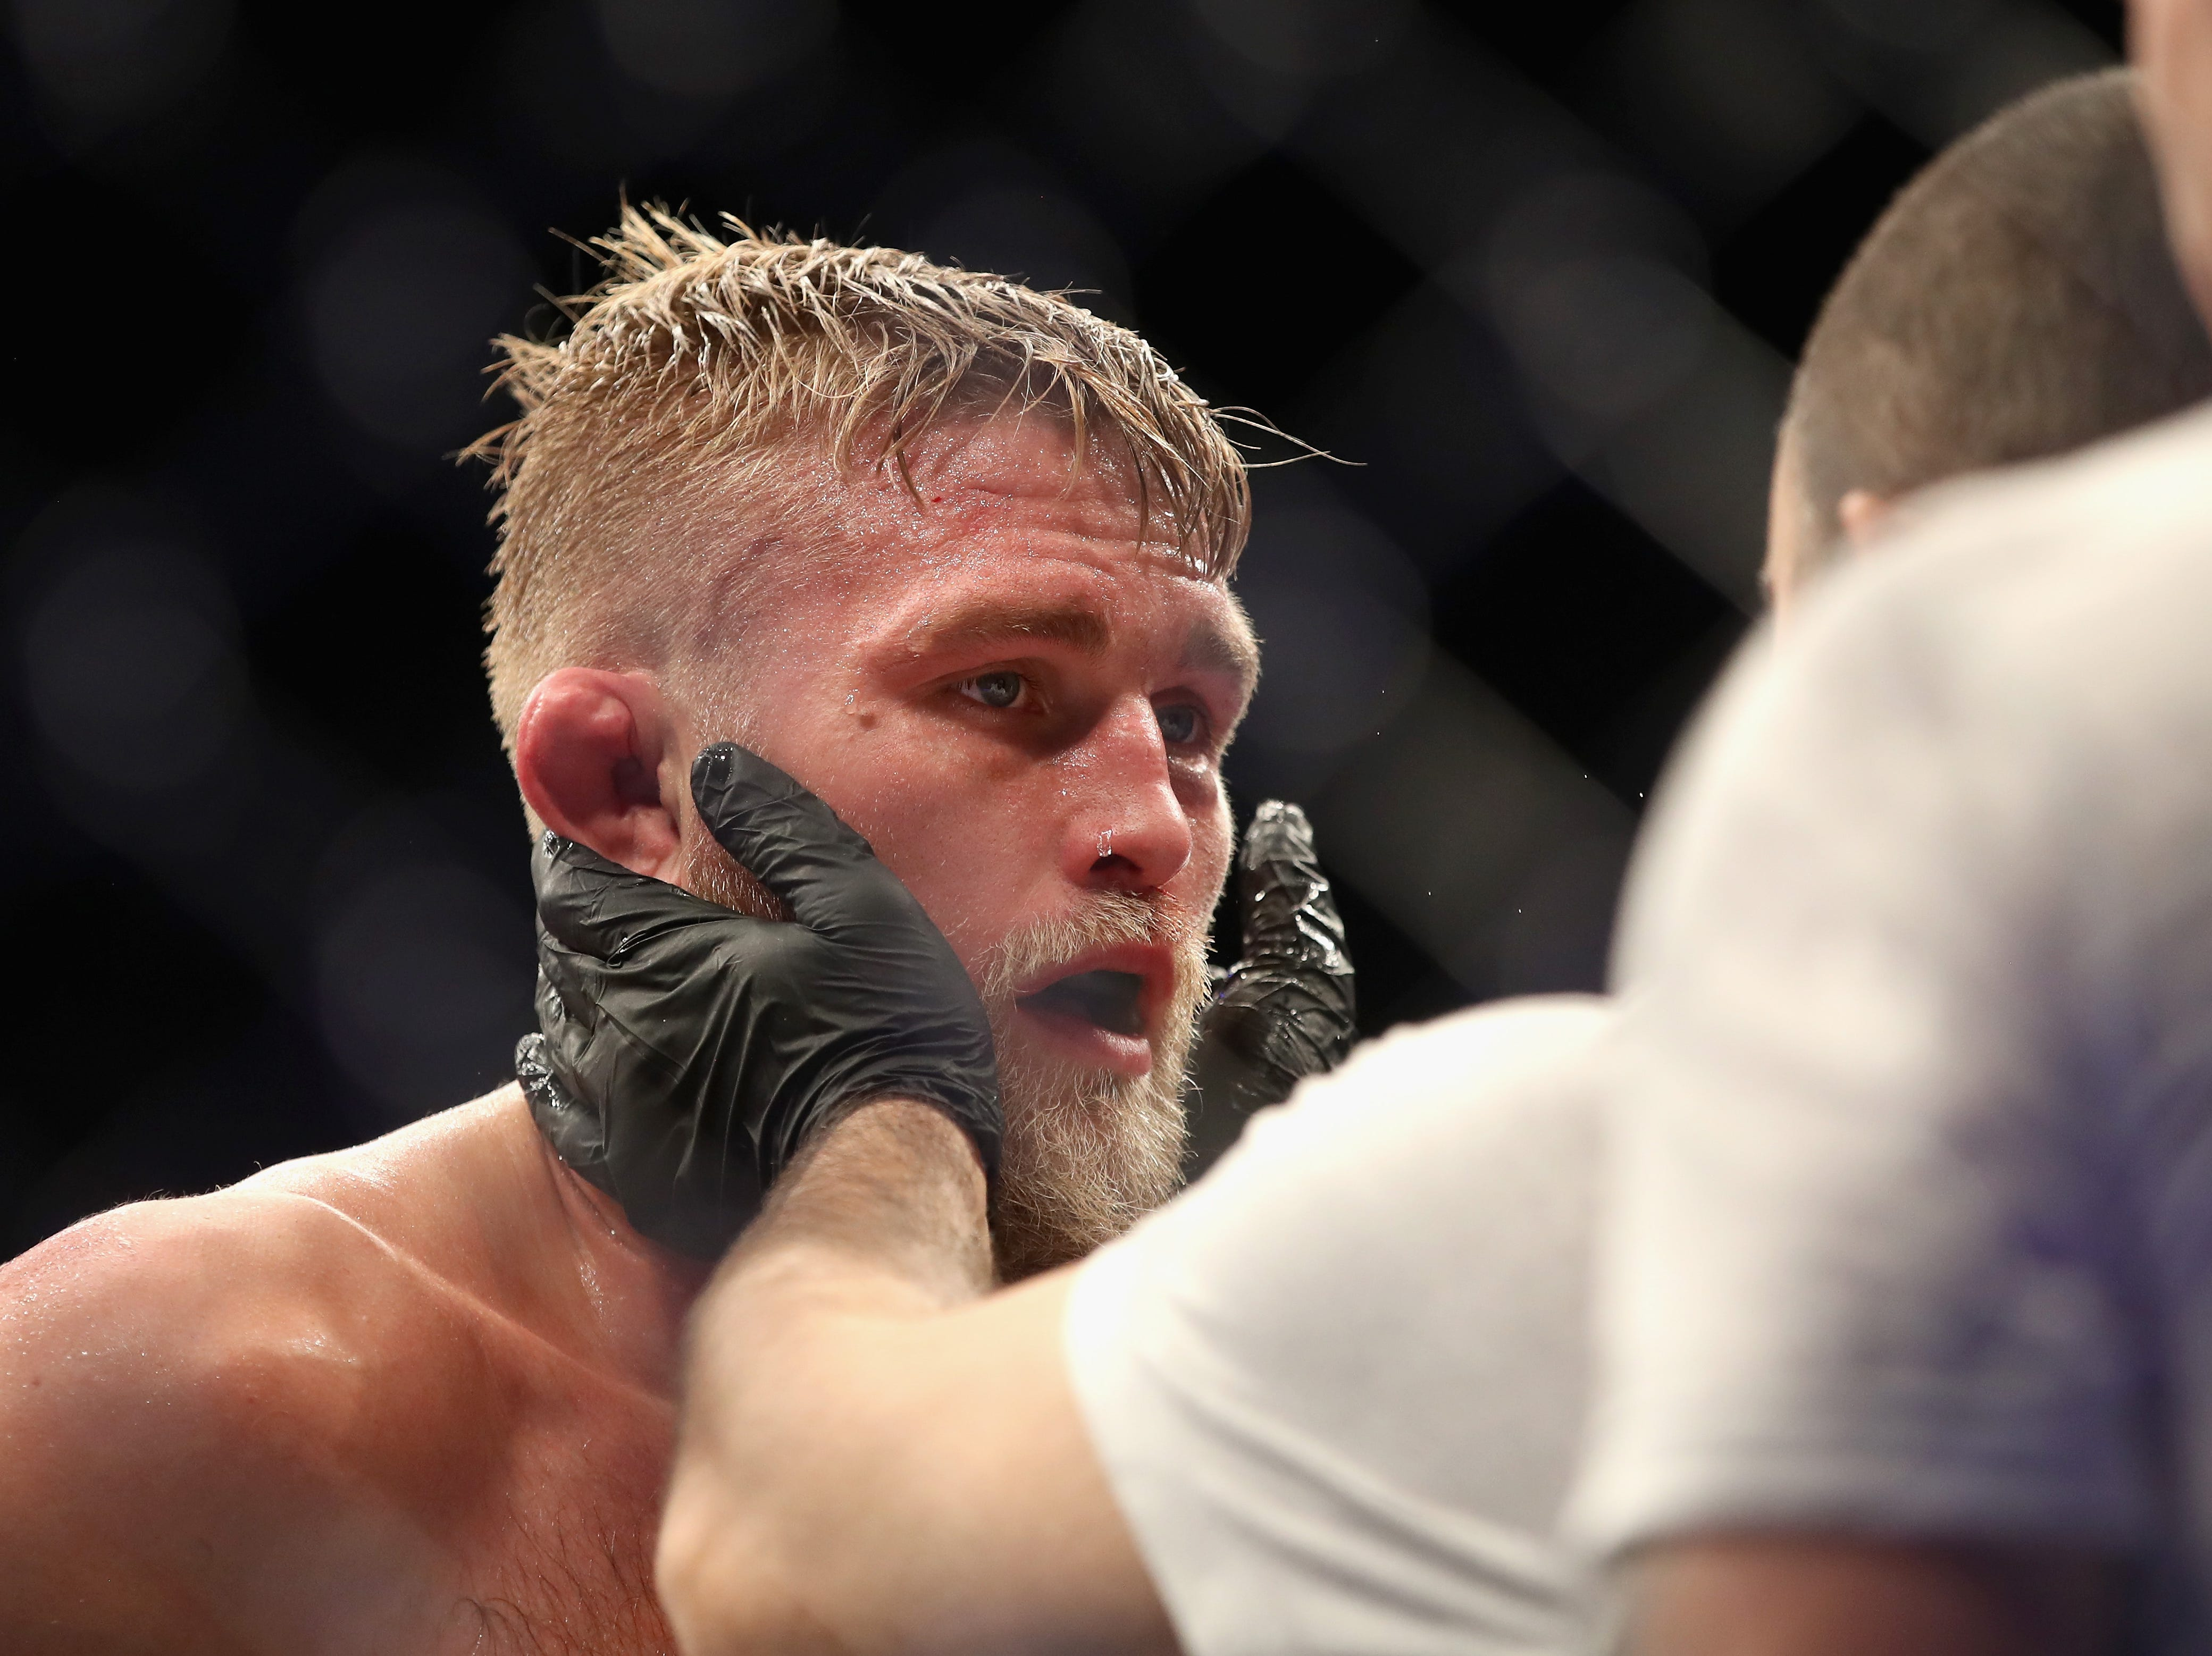 INGLEWOOD, CA - DECEMBER 29:  Alexander Gustafsson of Sweden  looks on after being defeated by Jon Jones during a Light Heavyweight titlebout during the UFC 232 event inside The Forum on December 29, 2018 in Inglewood, California.   Jones defeated Gustafsson by KO.  (Photo by Sean M. Haffey/Getty Images)